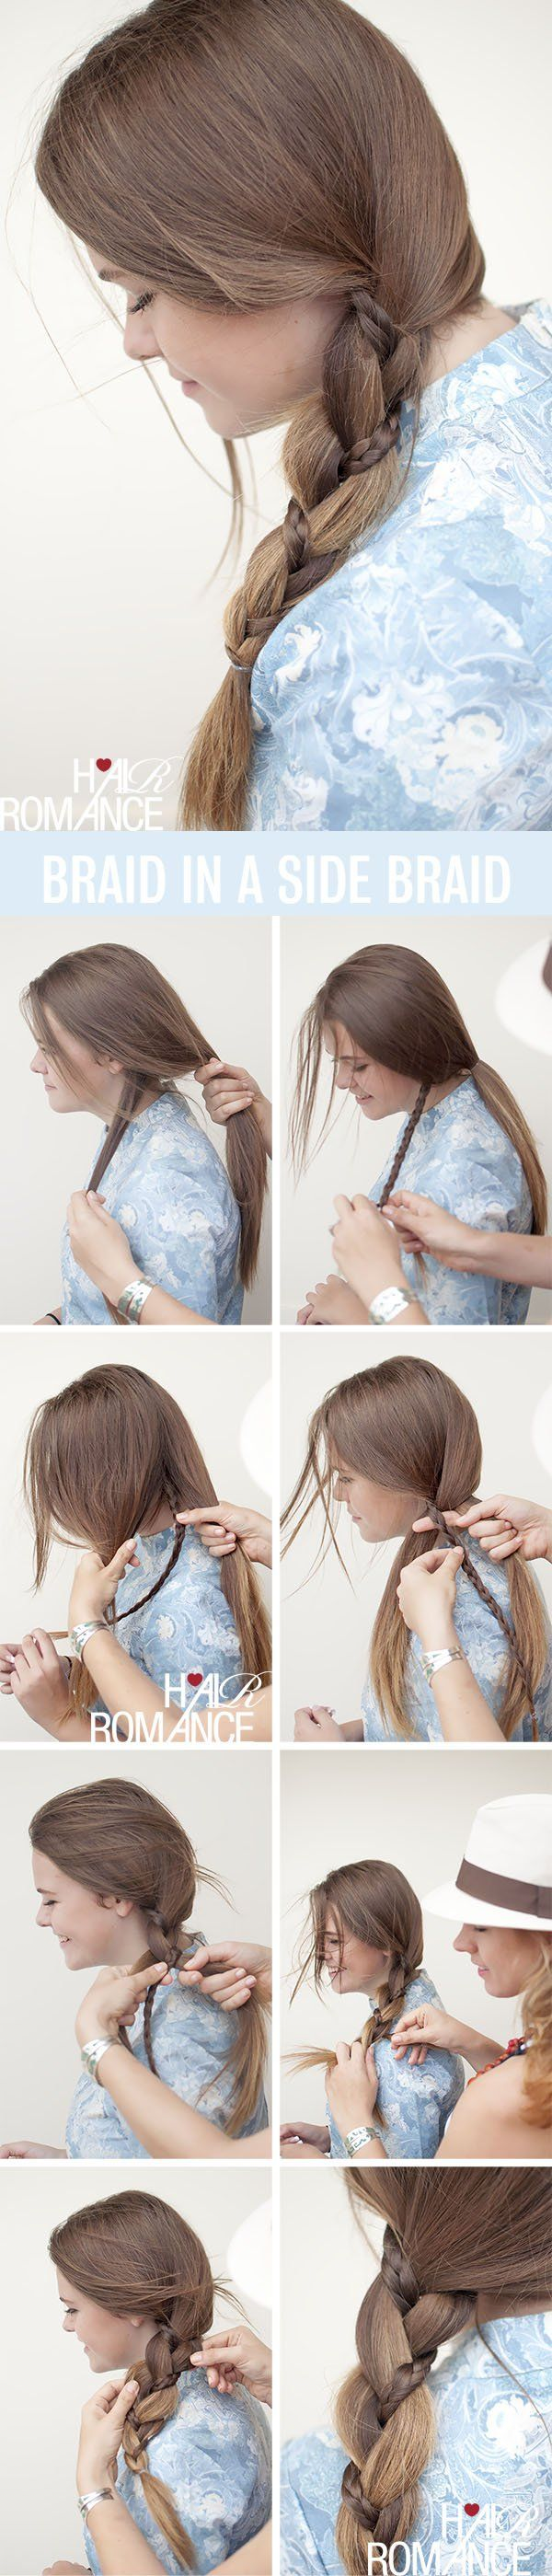 Image of easy side hairstyles you can try to do beauty